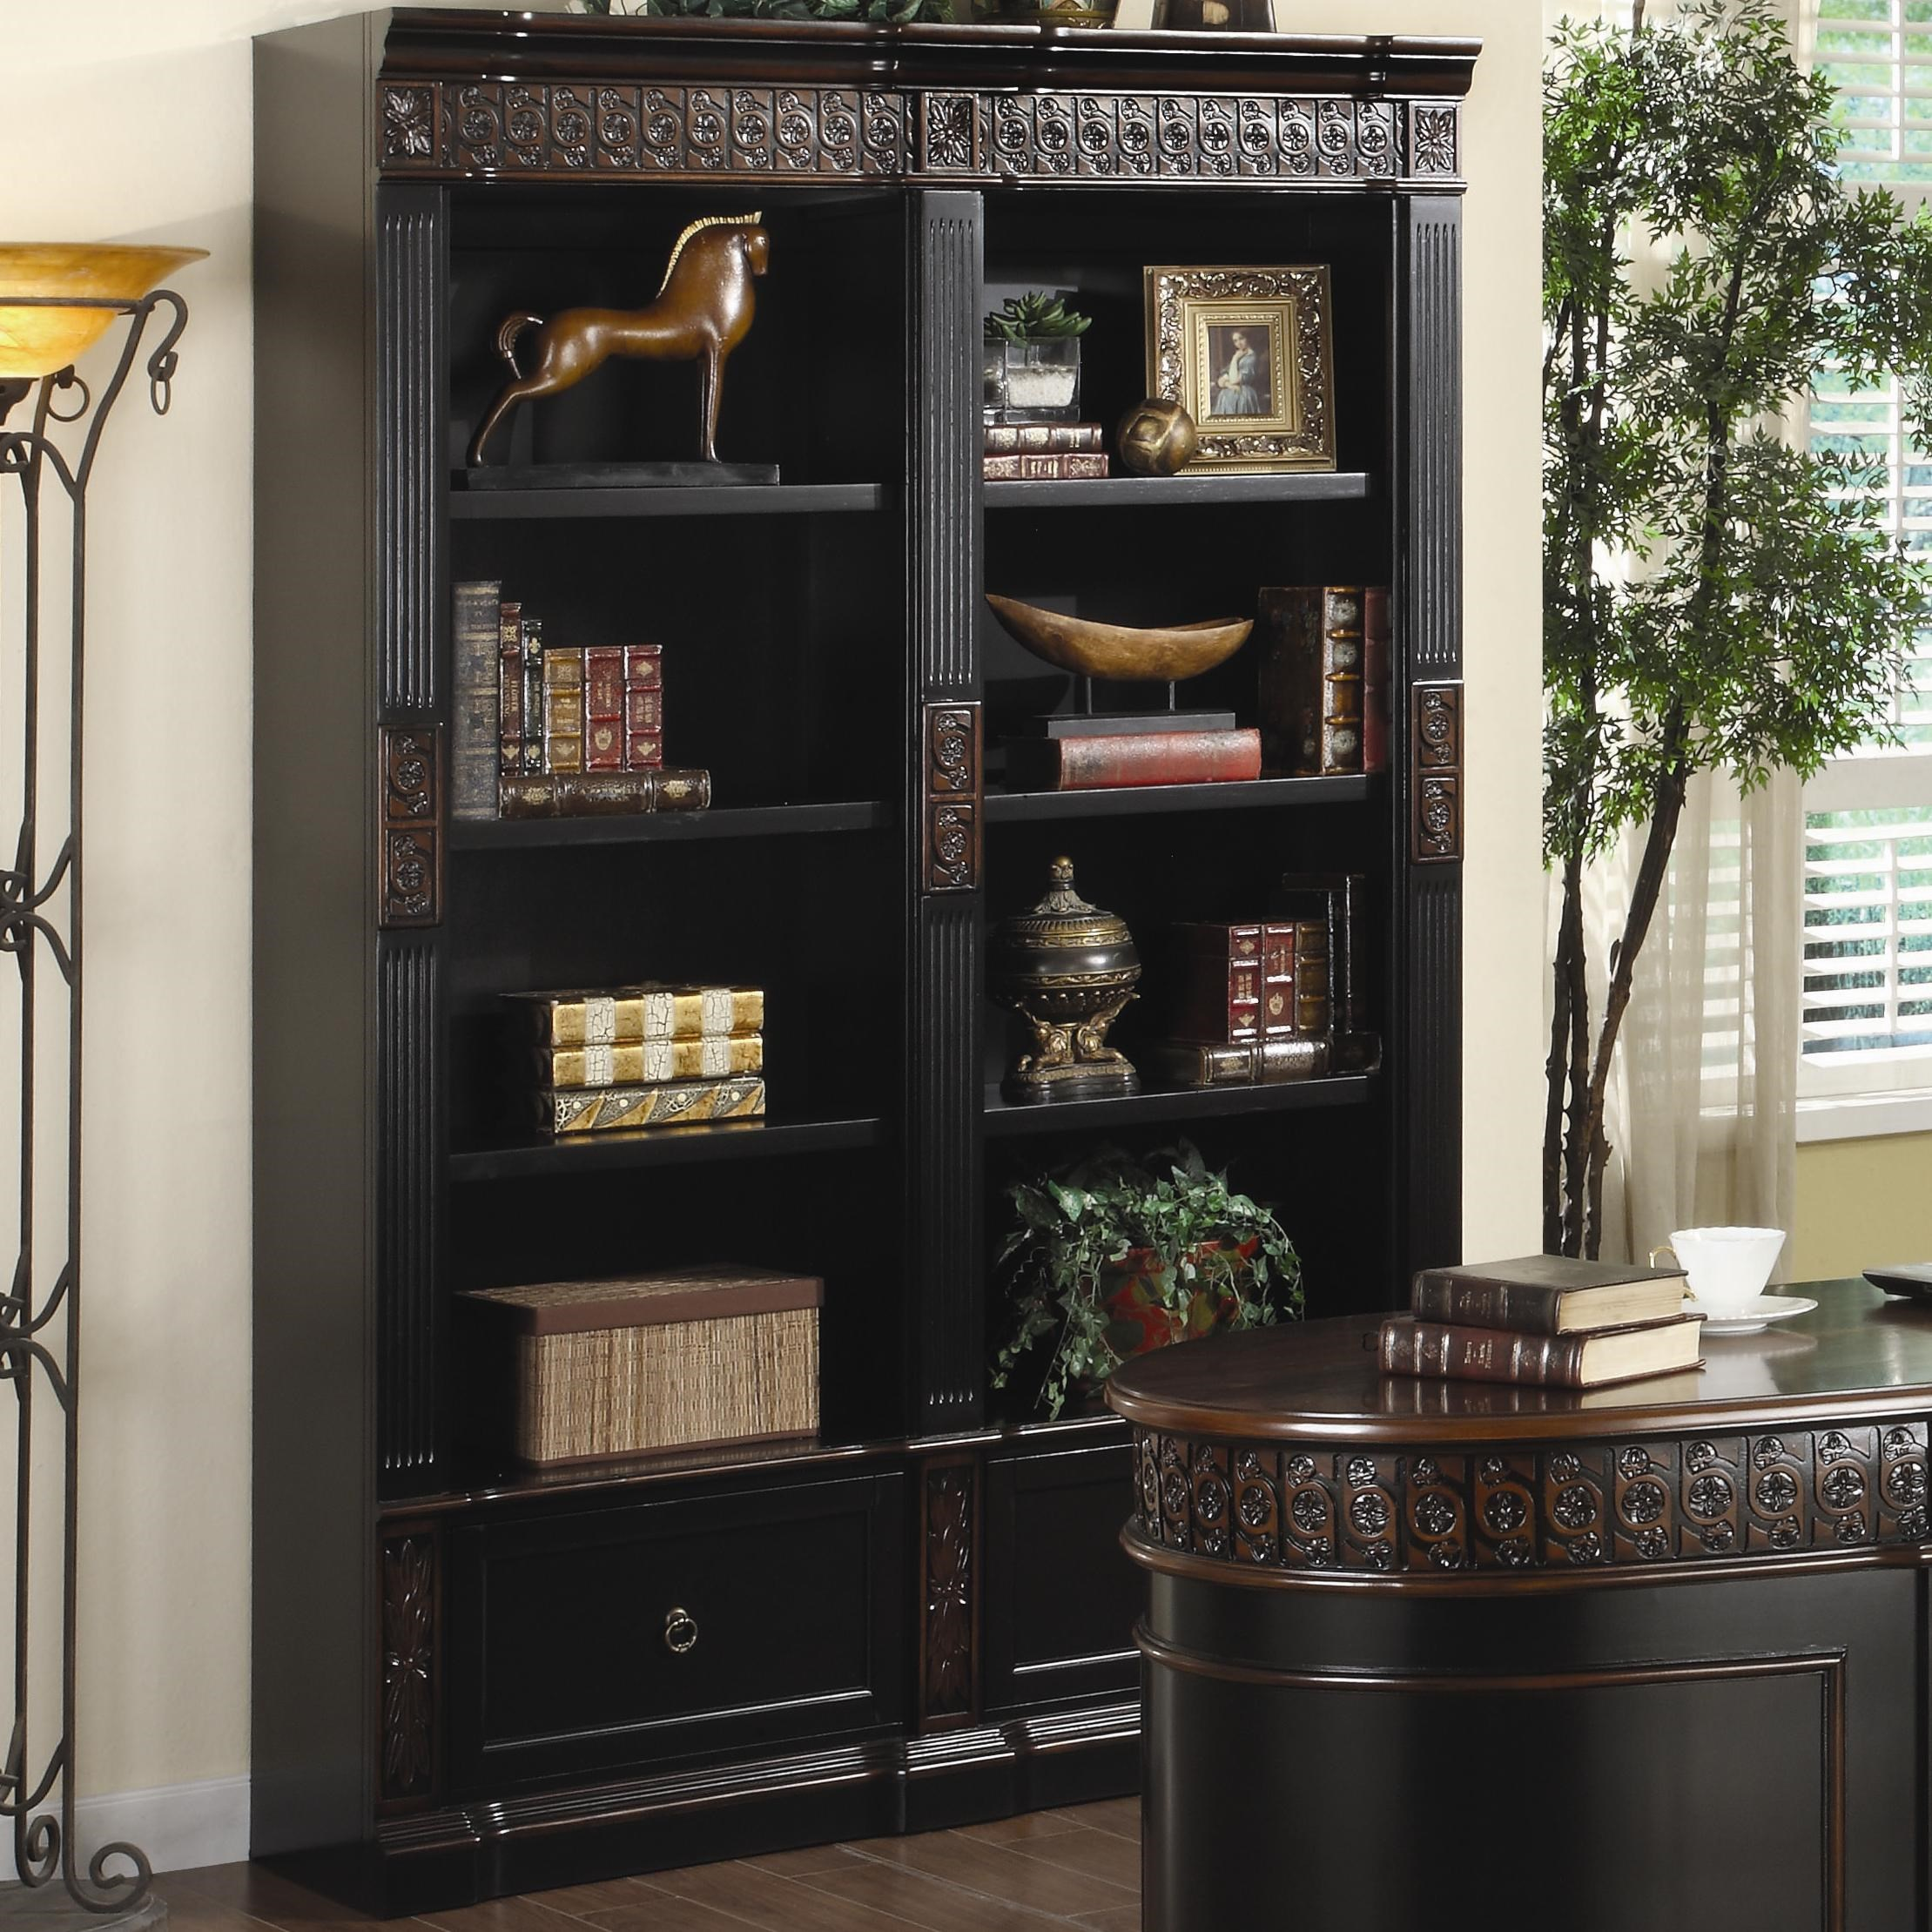 Size 1024x768 home office wall unit Bar Nicolas Traditional Carved Combination Bookcase By Coaster Value City Furniture Coaster Nicolas Traditional Carved Combination Bookcase Value City